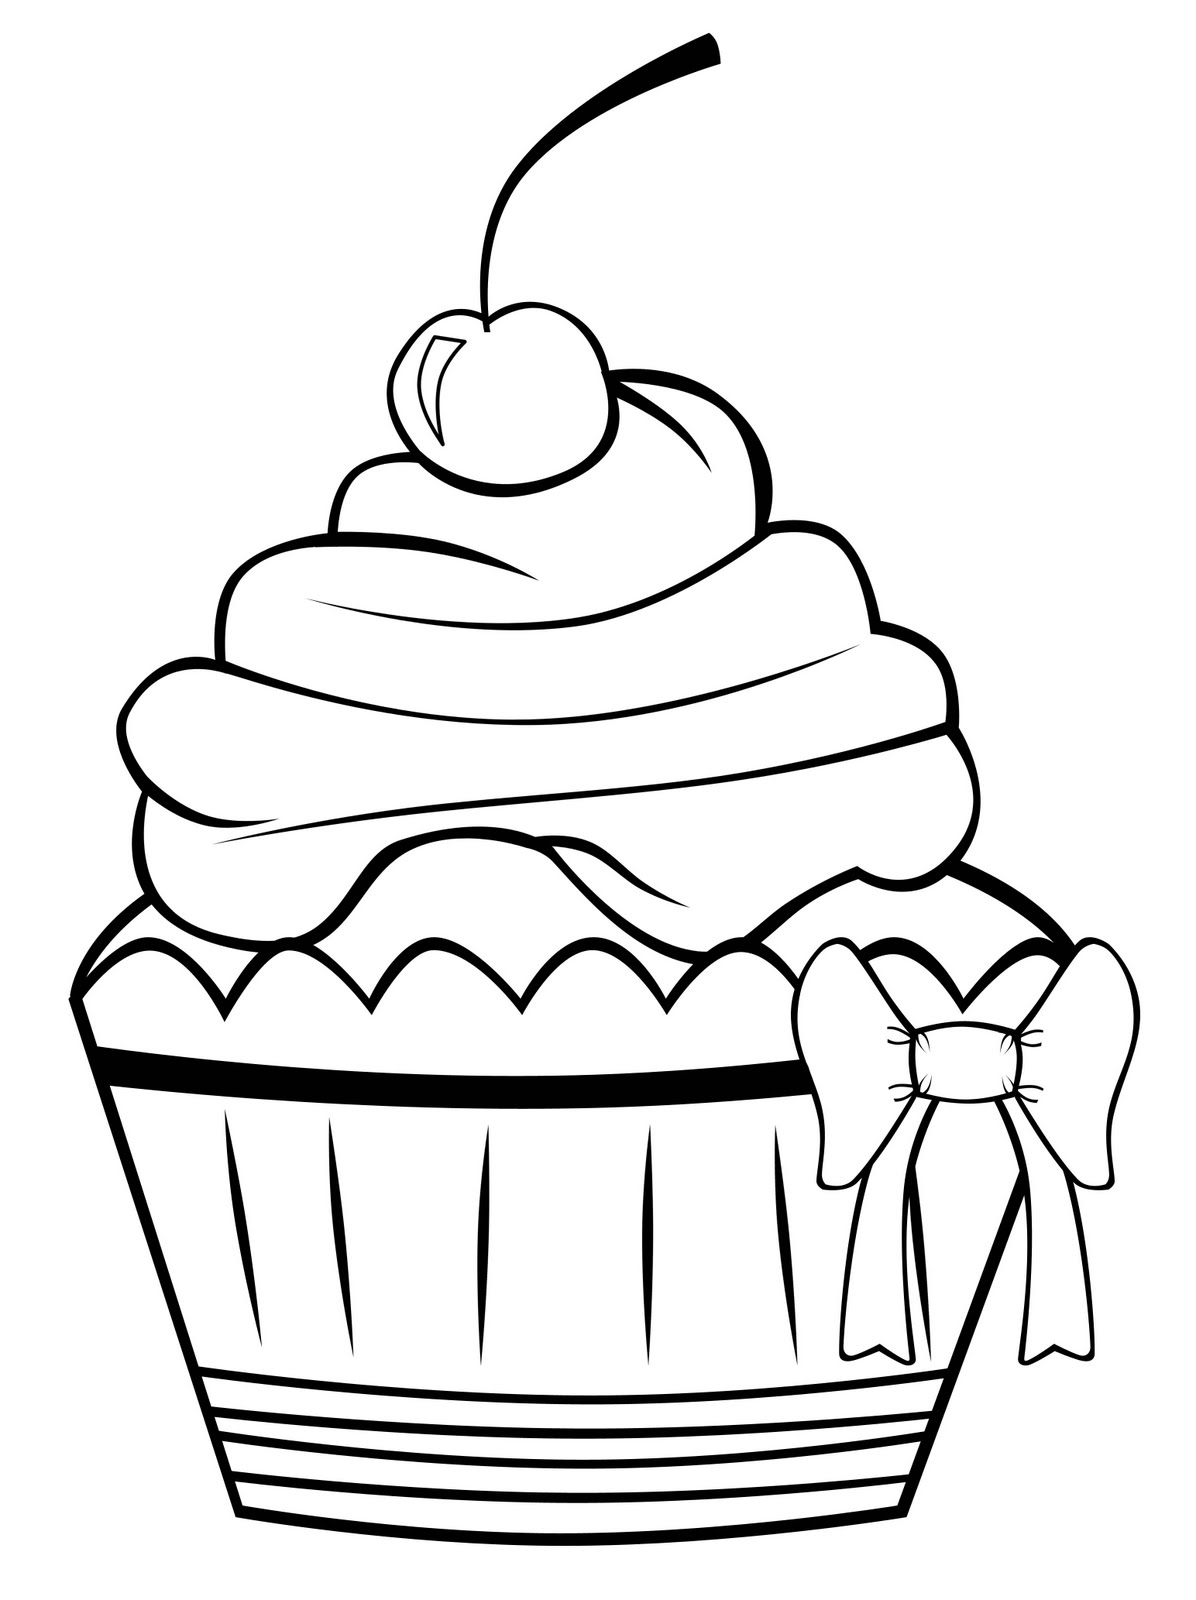 coloring pages cupcakes cupcakes and cakes for kids cupcakes and cakes kids pages cupcakes coloring